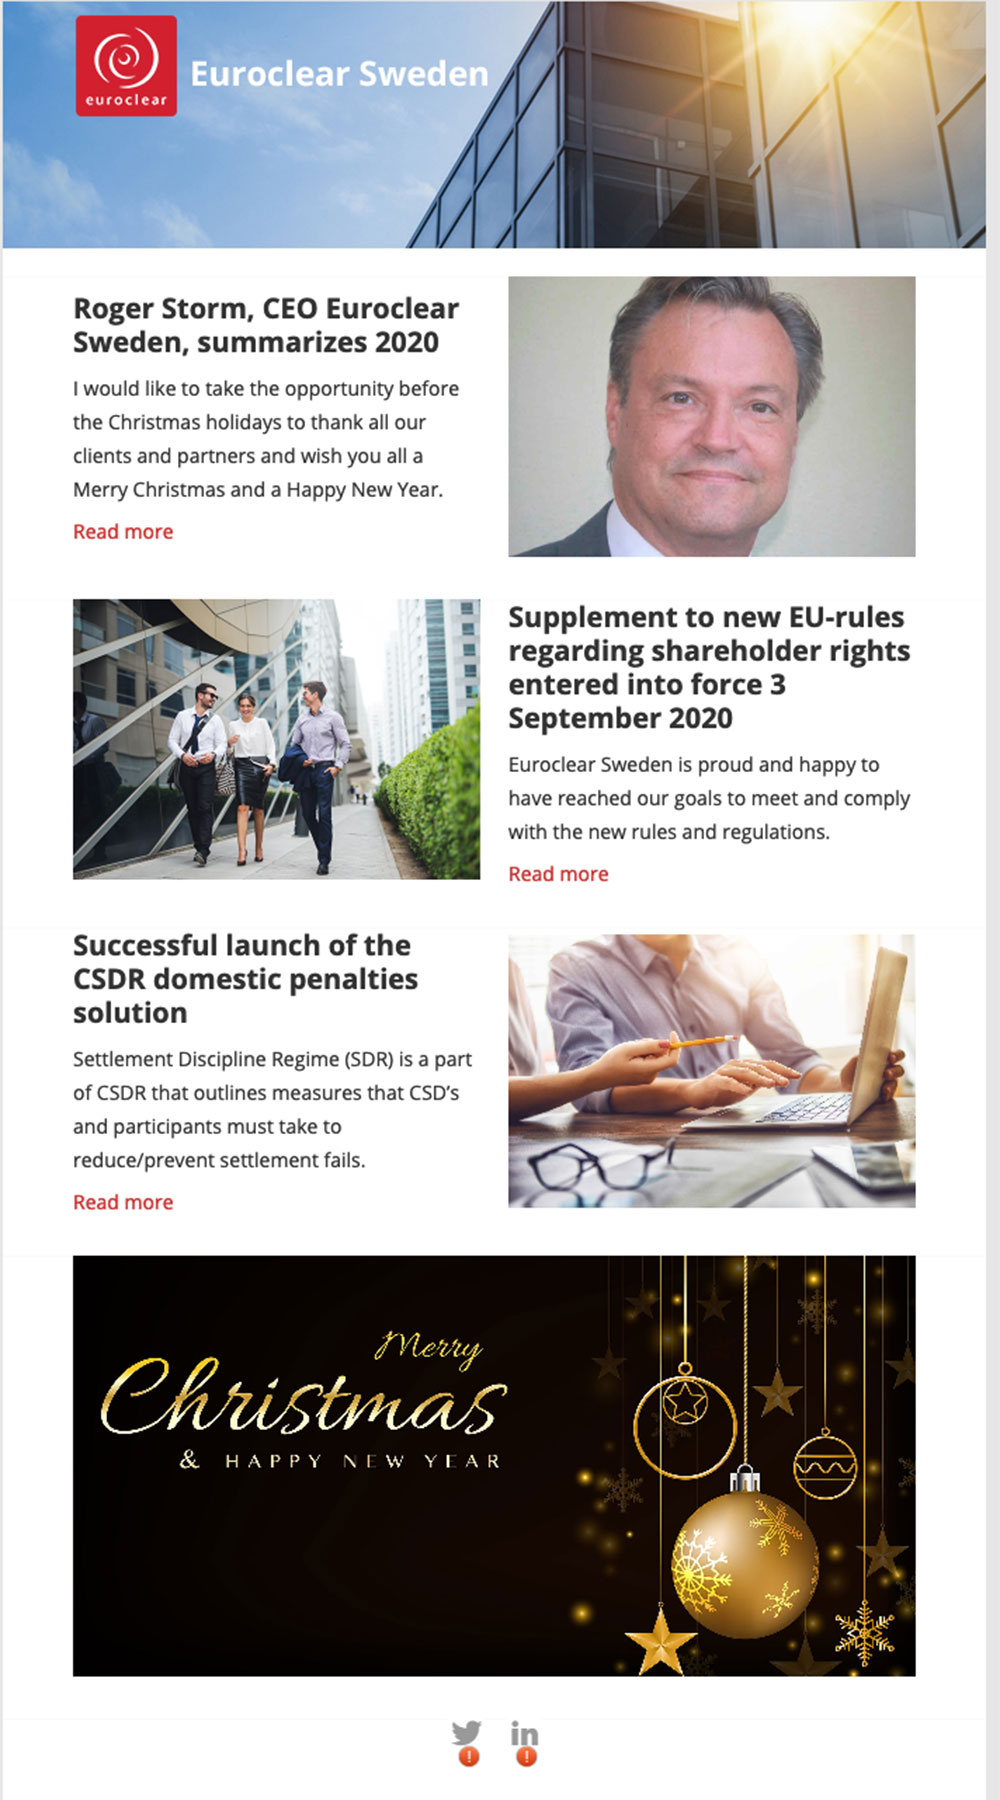 Euroclear Sweden's newsletter